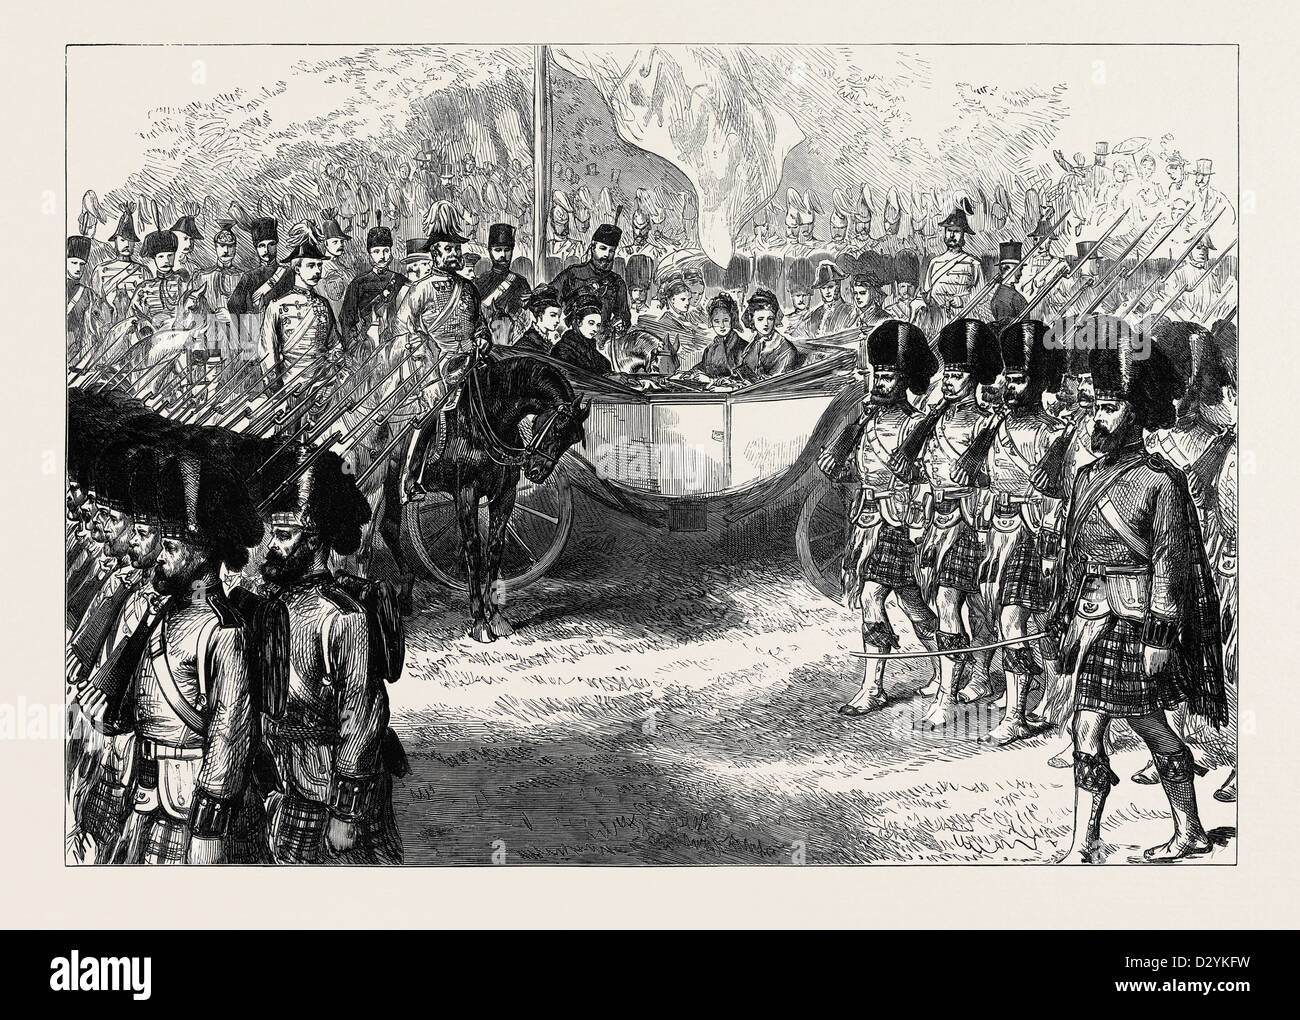 REVIEW AT WINDSOR OF TROOPS FROM THE ASHANTEE WAR: THE 42ND HIGHLANDERS MARCHING PAST THE QUEEN 1874 - Stock Image